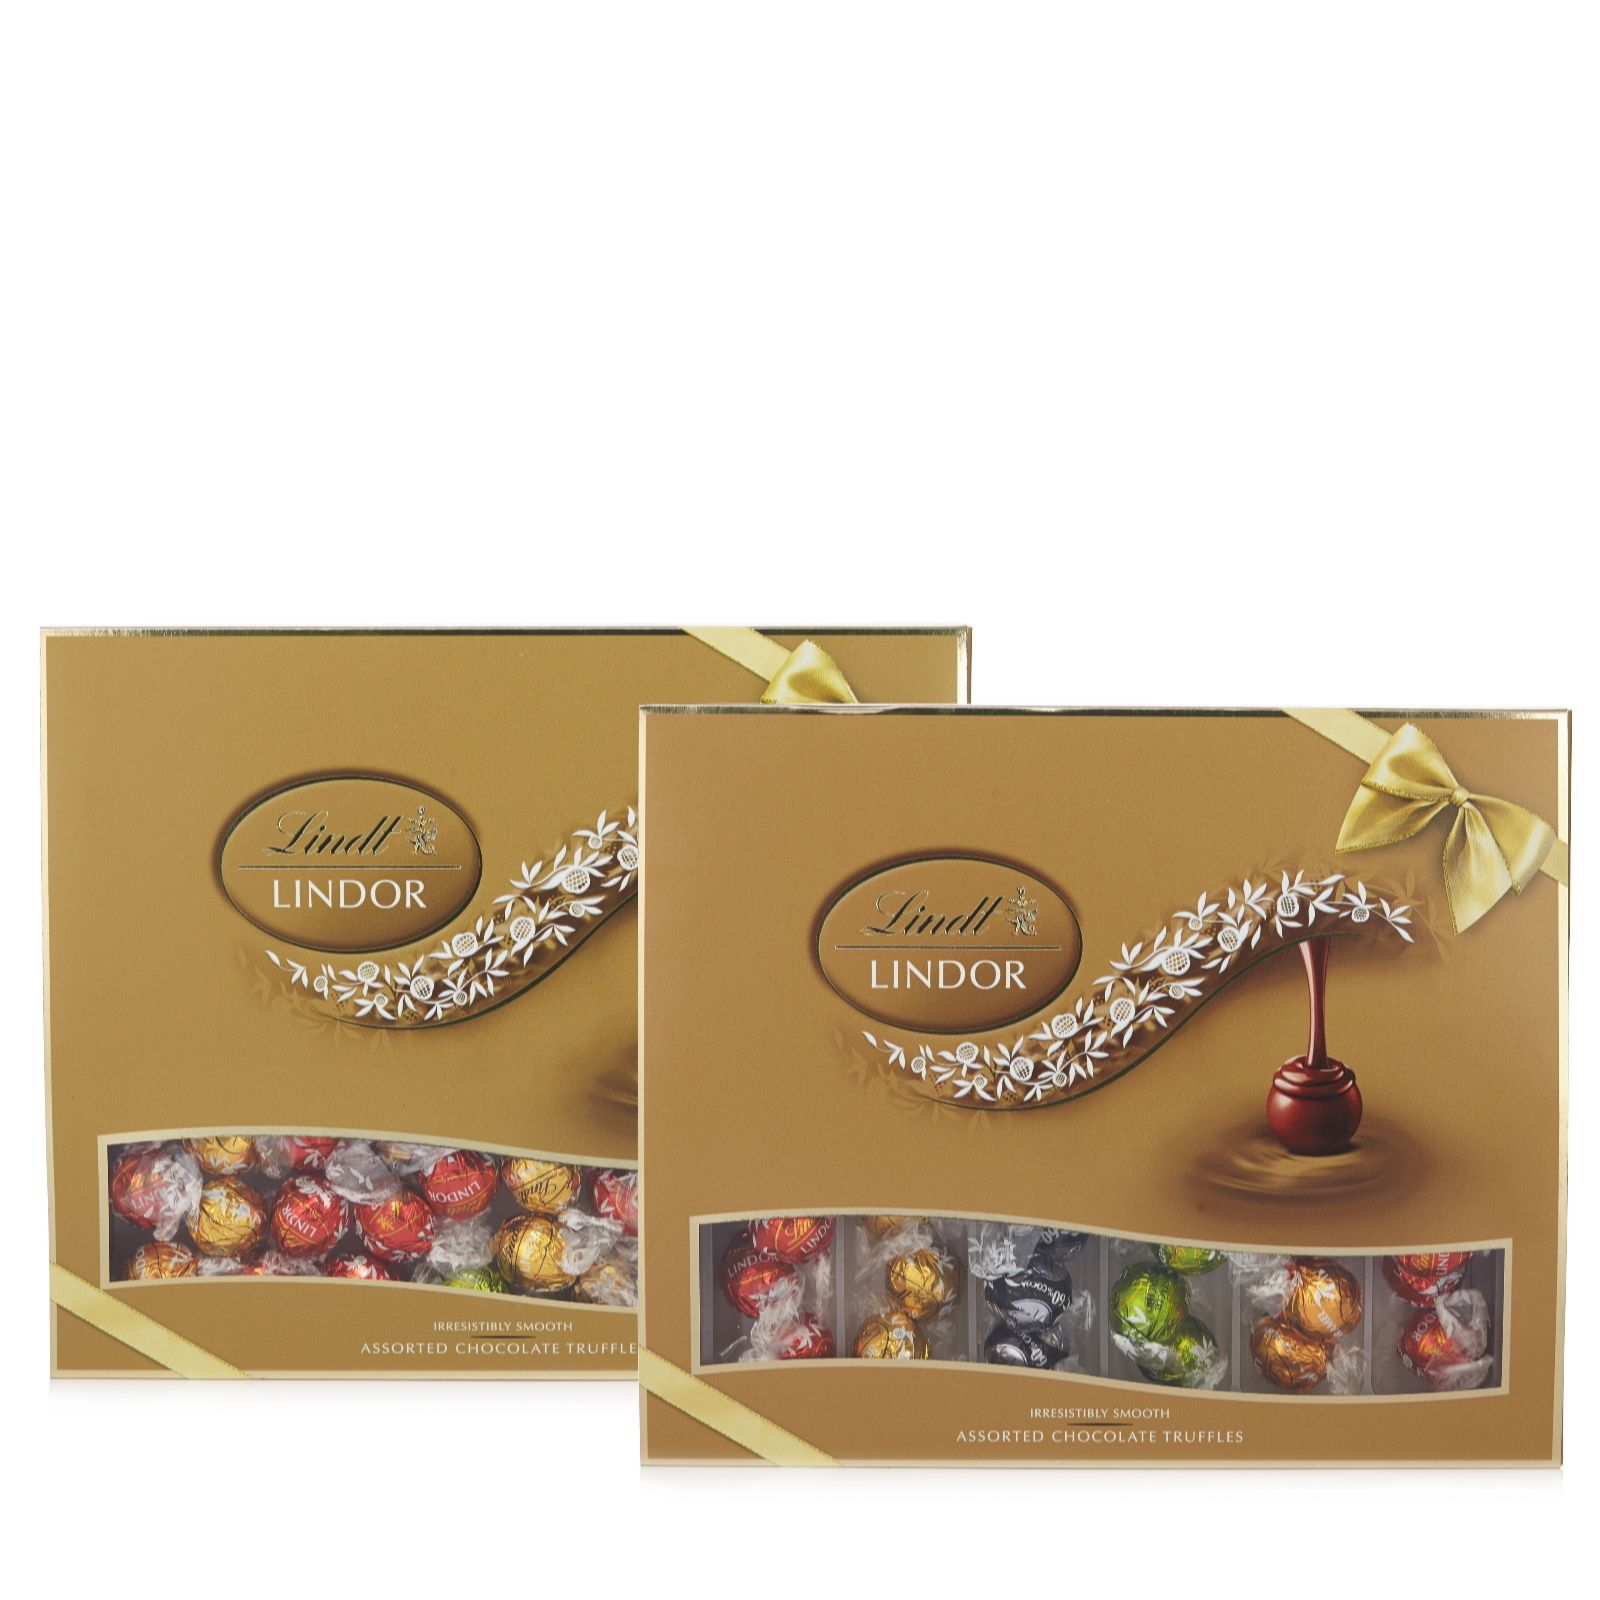 Lindt Set Of 2 Boxes Of Lindor Truffles Qvc Uk